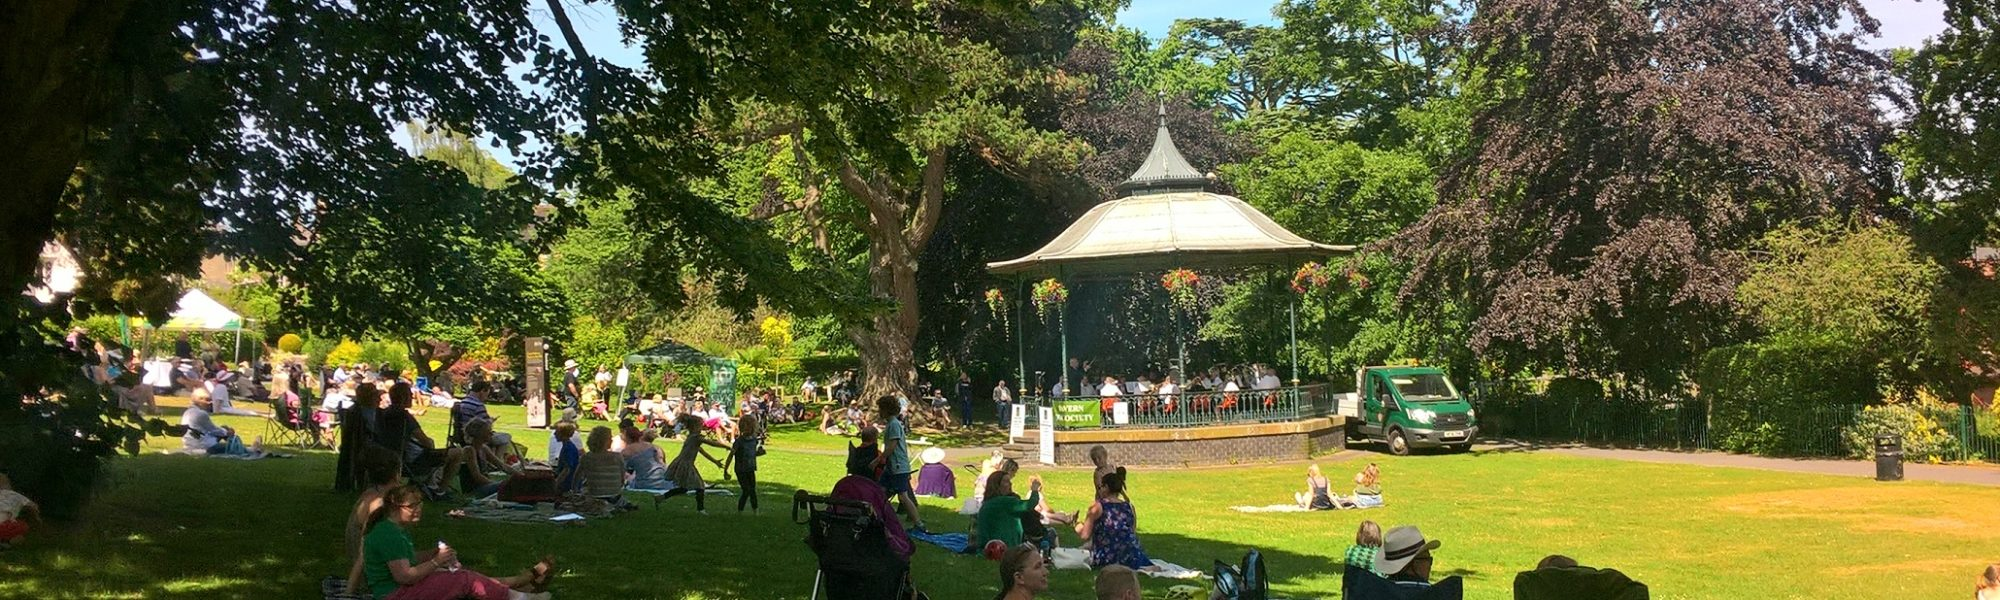 Bandstand in Priory Park 2017